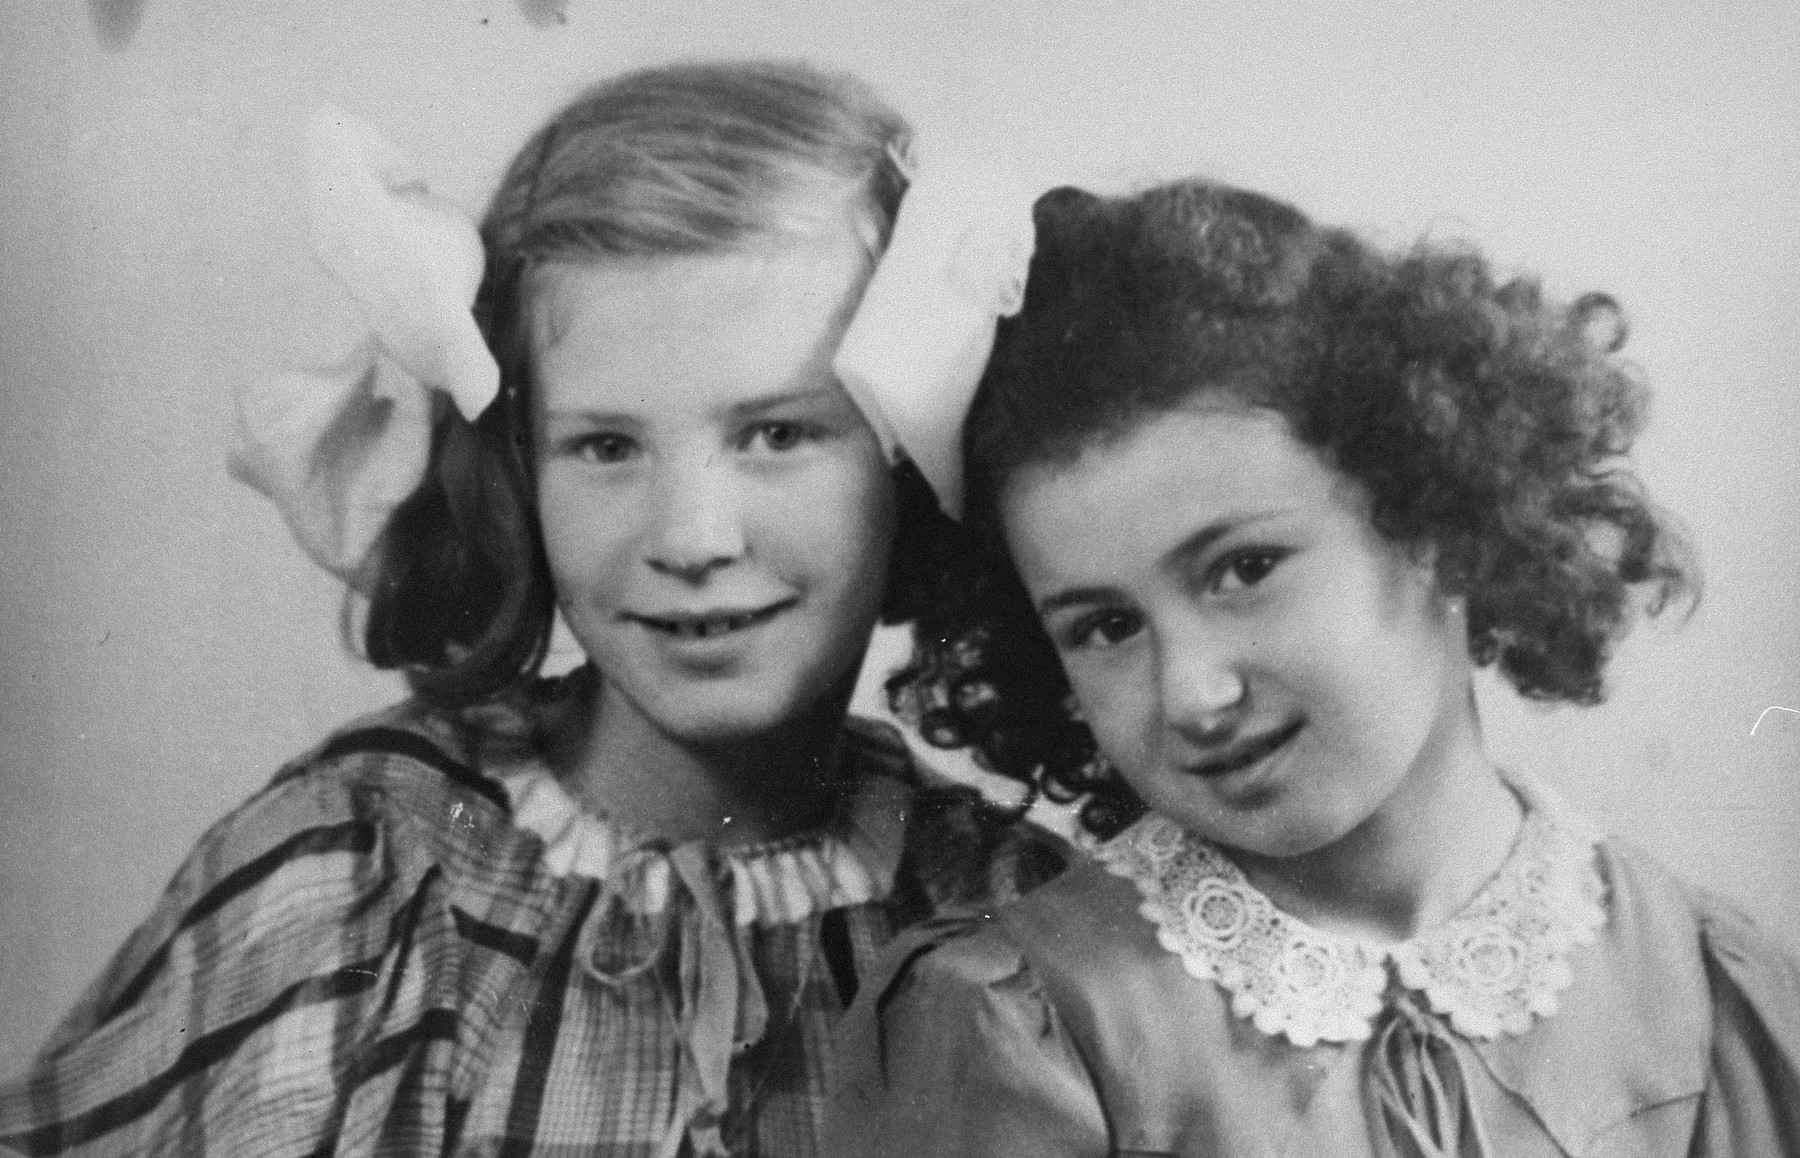 Marion Kaufmann with Rie Beelen, the daughter of her rescuers.  Both girls are wearing ribbons and dresses sewn from a retrieved Canadian parachute.